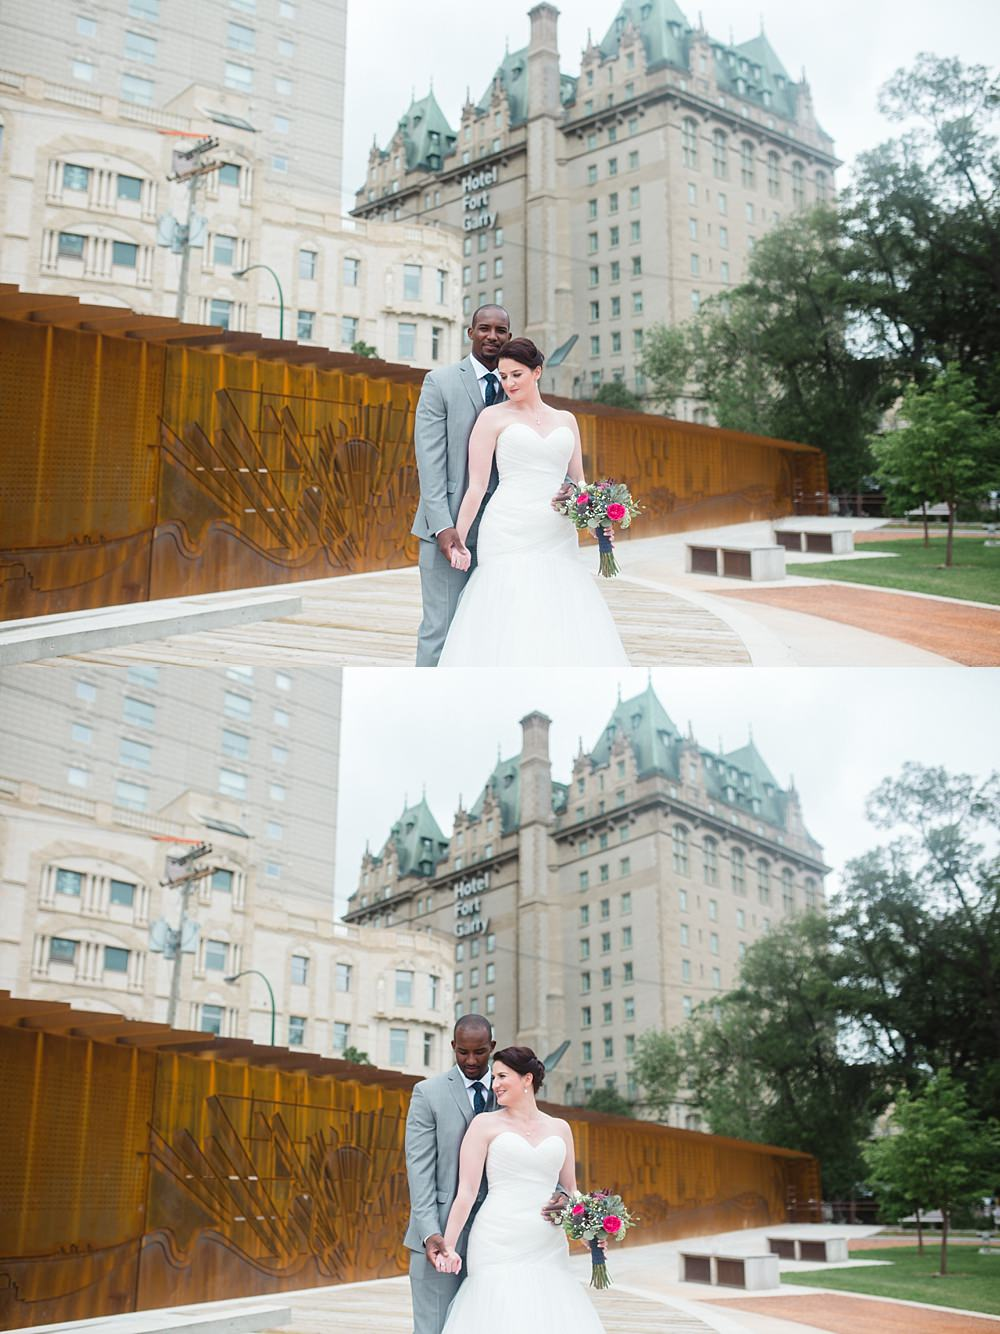 wedding-winnipeg-manitoba-canada-15-6